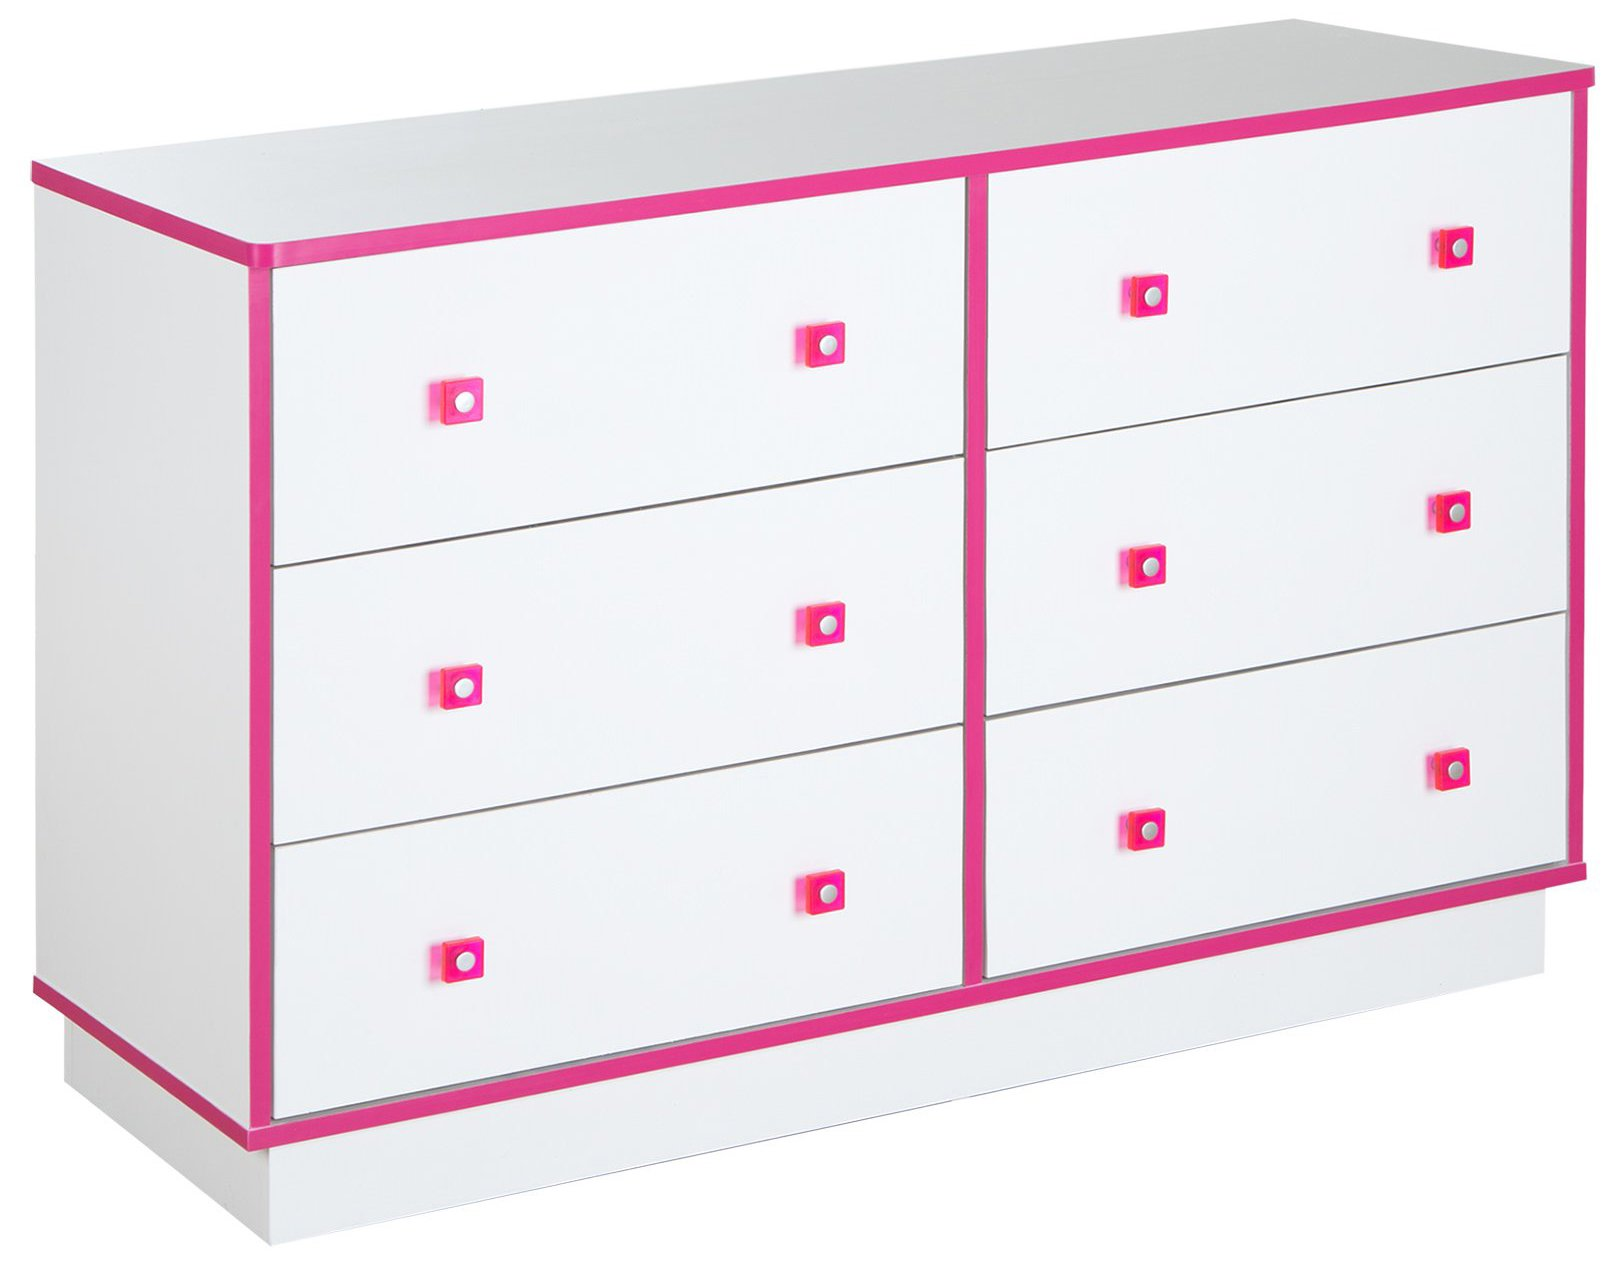 South Shore Logik 6-Drawer Double Dresser, Pure White and Pink, Pure White/Pink by South Shore